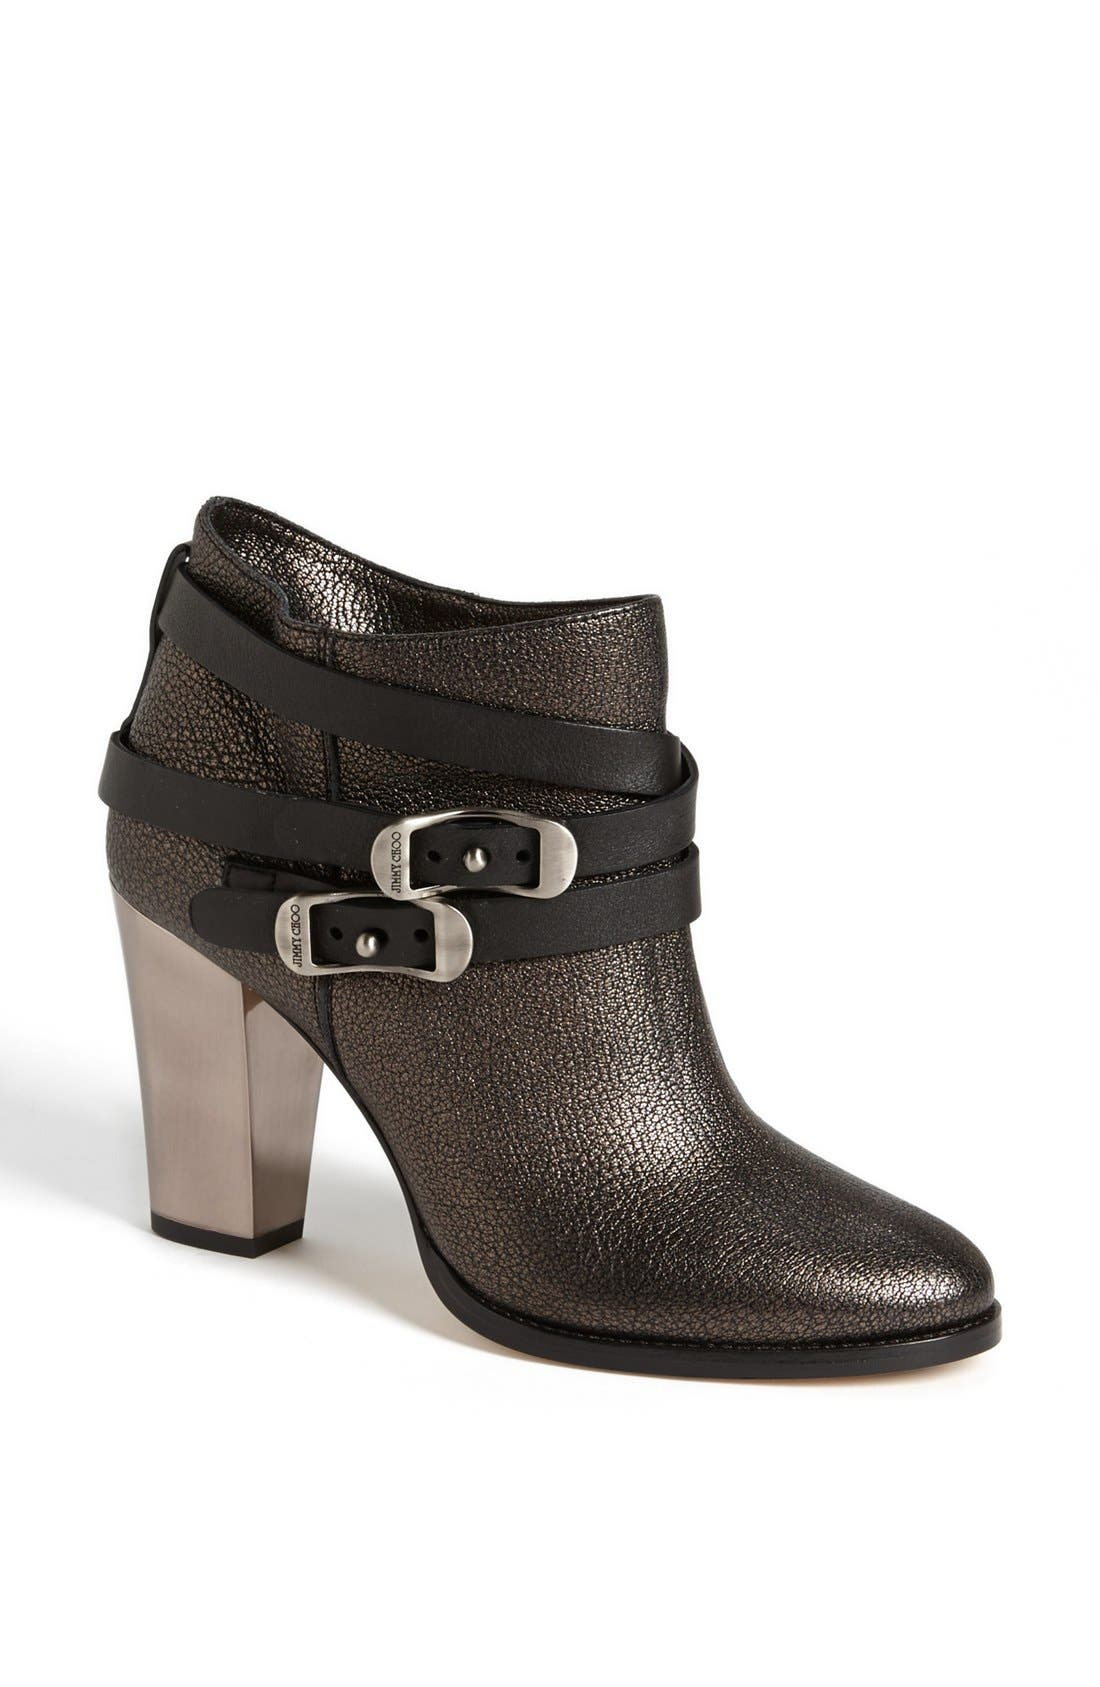 Alternate Image 1 Selected - Jimmy Choo 'Melba' Bootie